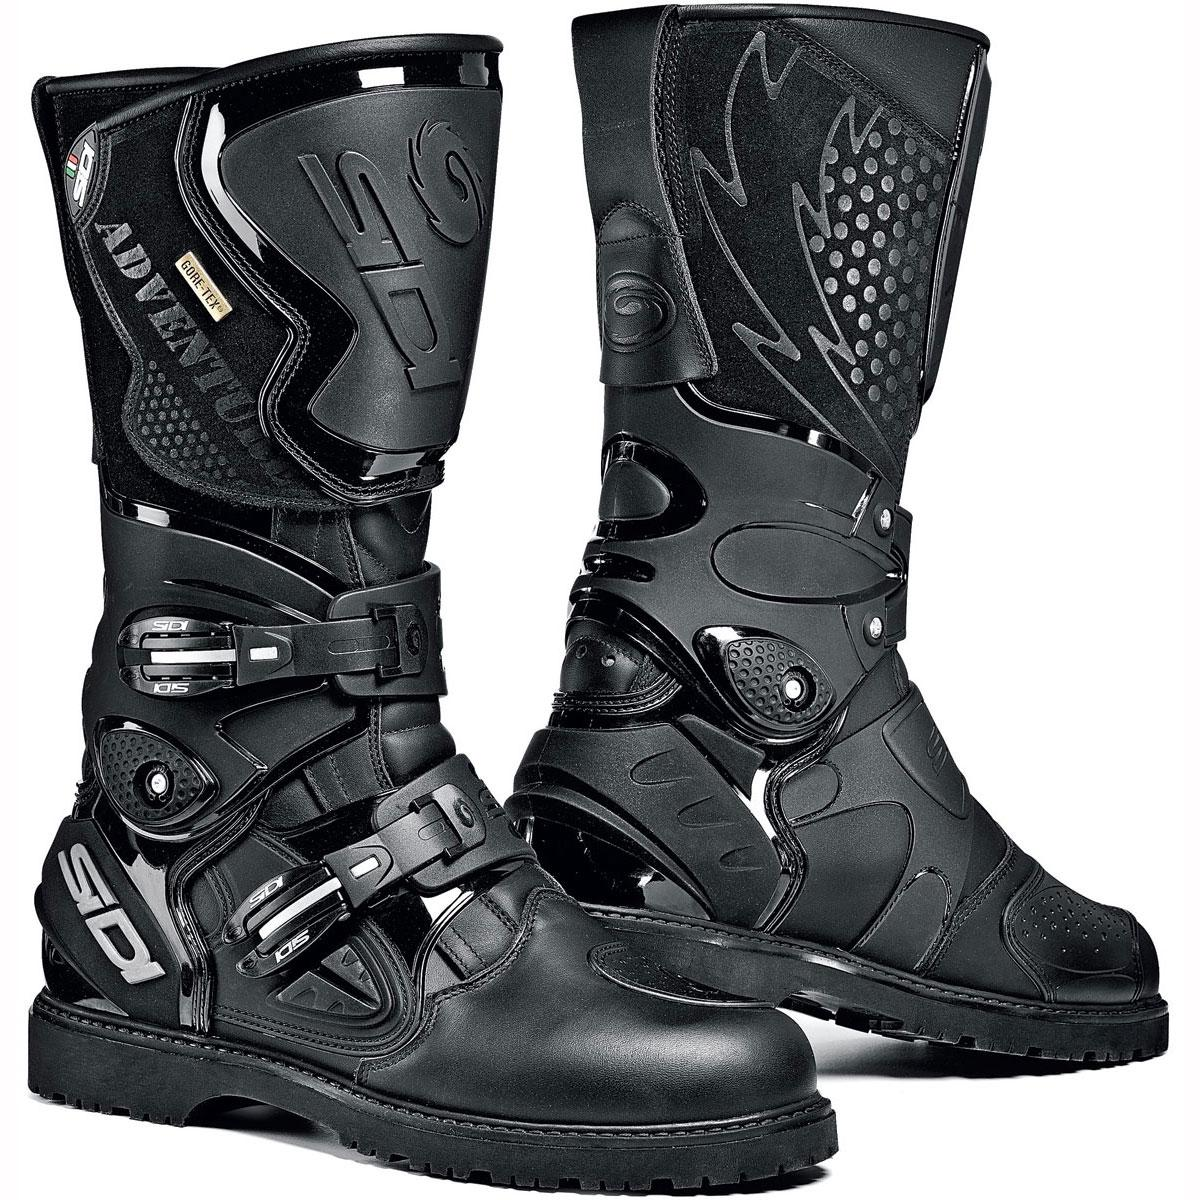 10 of the best adventure boots   Visordown